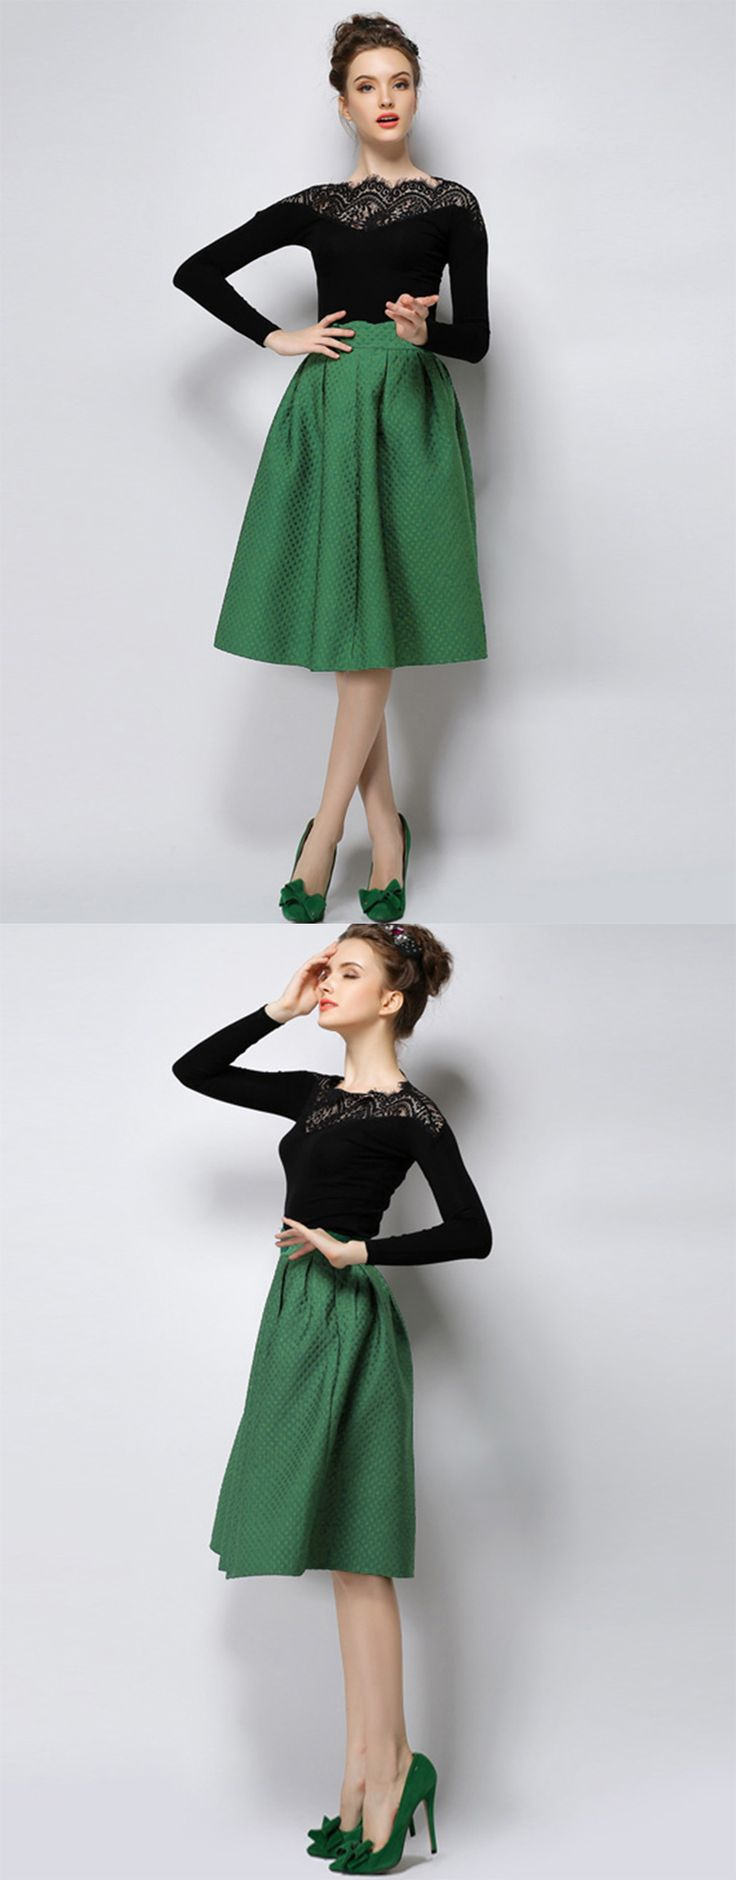 Christmas dress casual - Green High Waist Plaid Skirt Christmas Outfitschristmas